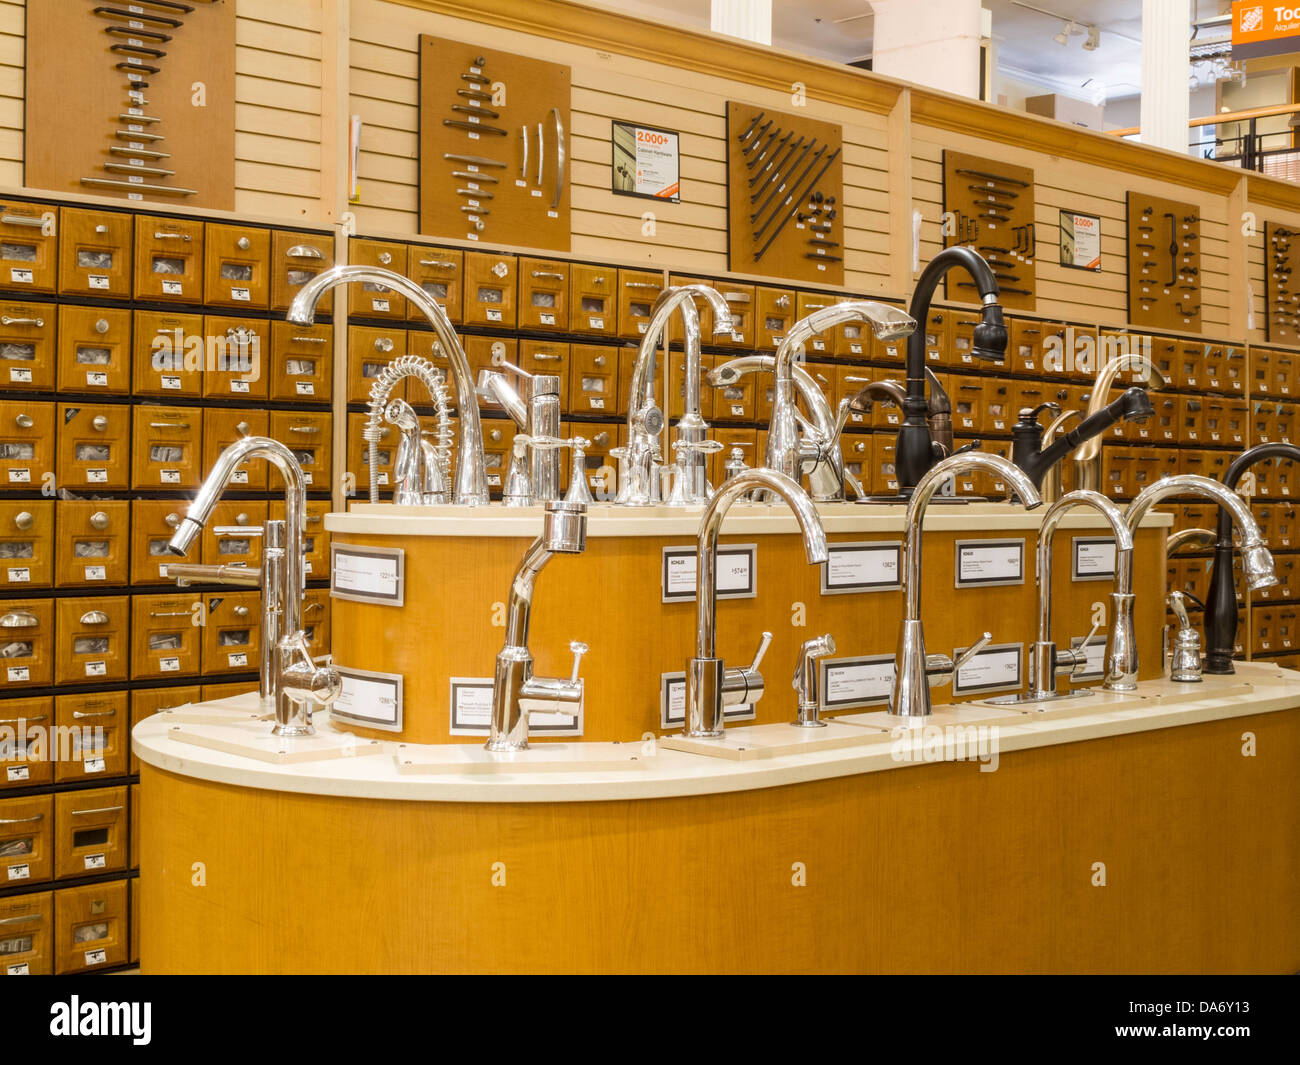 Faucet Display in Home Depot, NYC Stock Photo: 57930575 - Alamy